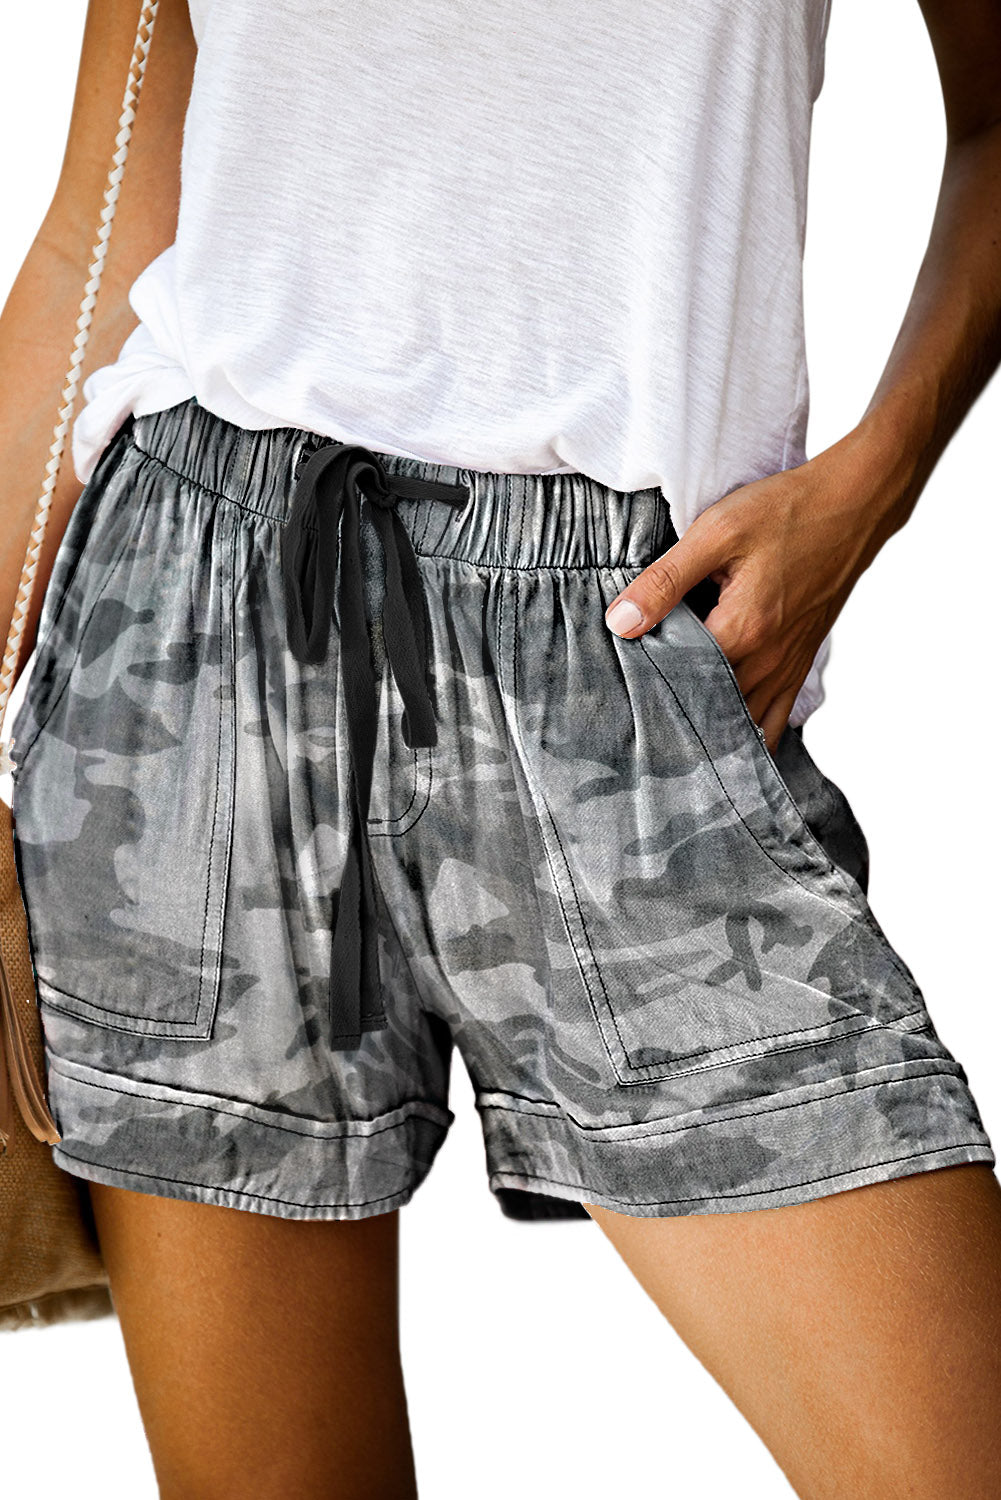 Camouflague Print Drawstring Casual Elastic Waist Pocketed Shorts Pants & Culotte Discount Designer Fashion Clothes Shoes Bags Women Men Kids Children Black Owned Business